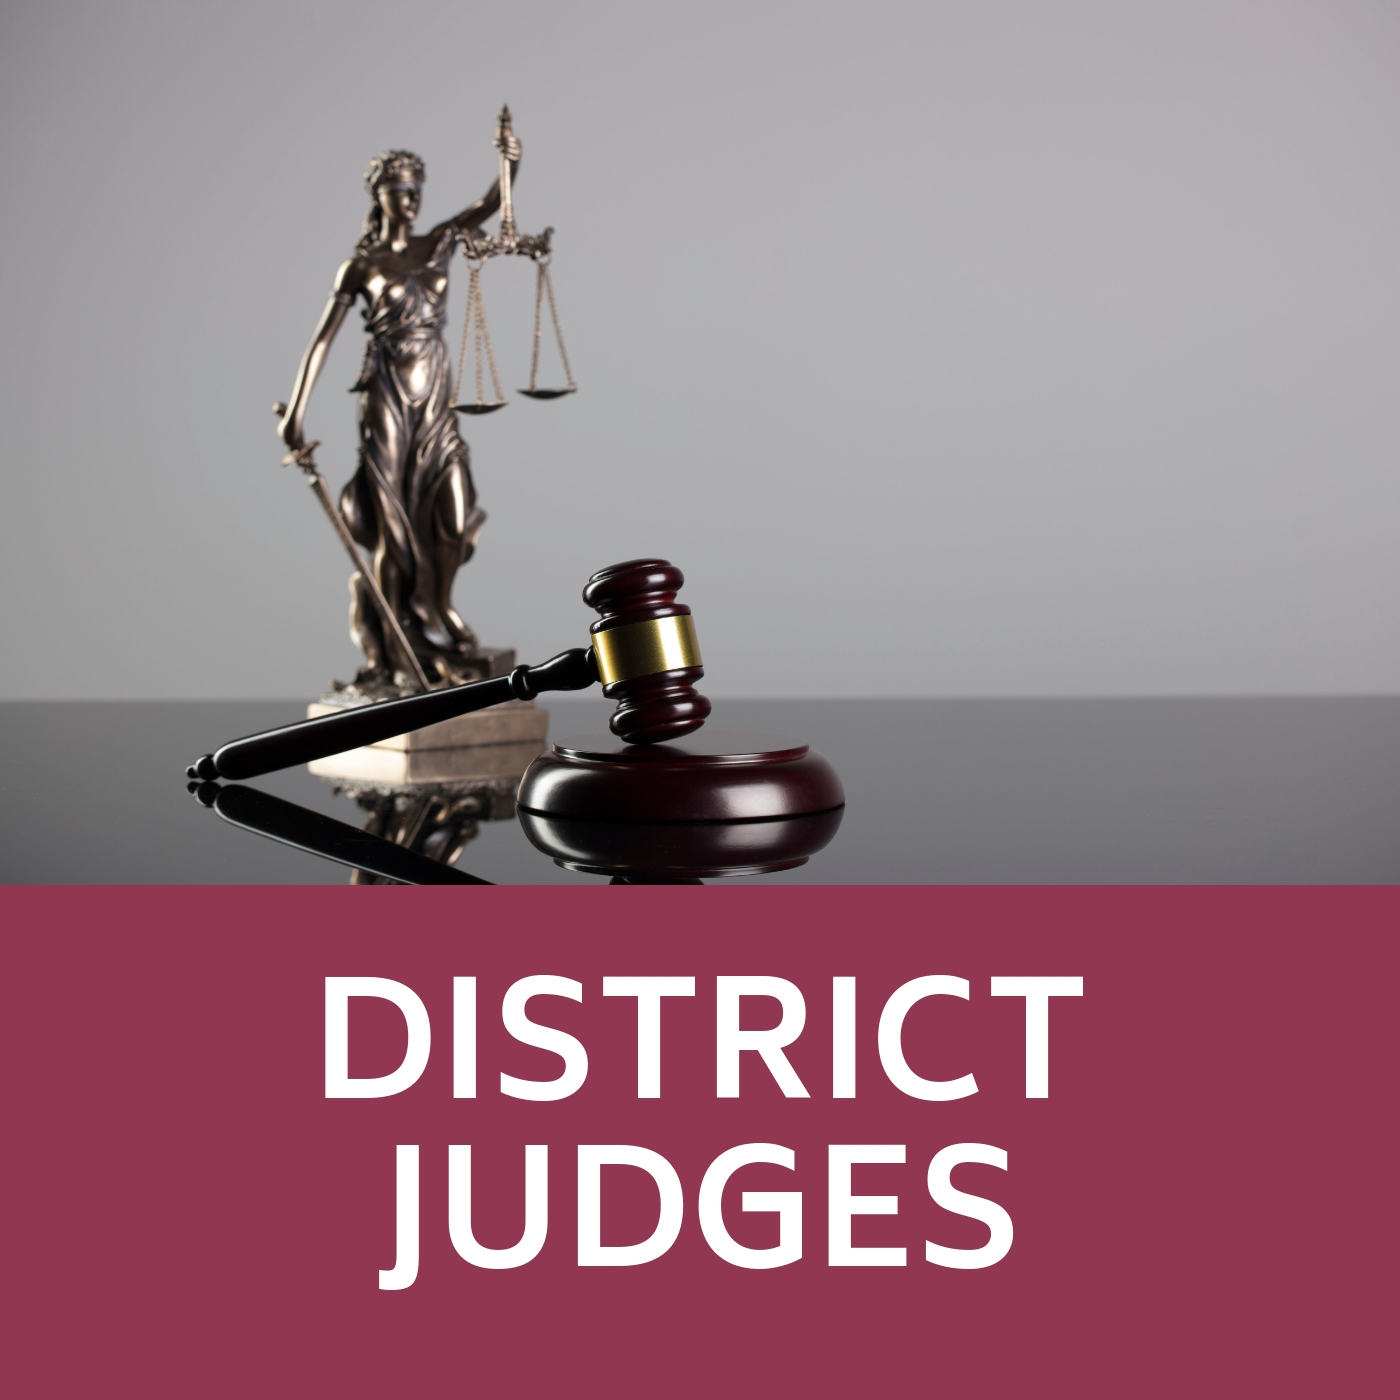 Judge gavel and block and that links to information about District Judges.